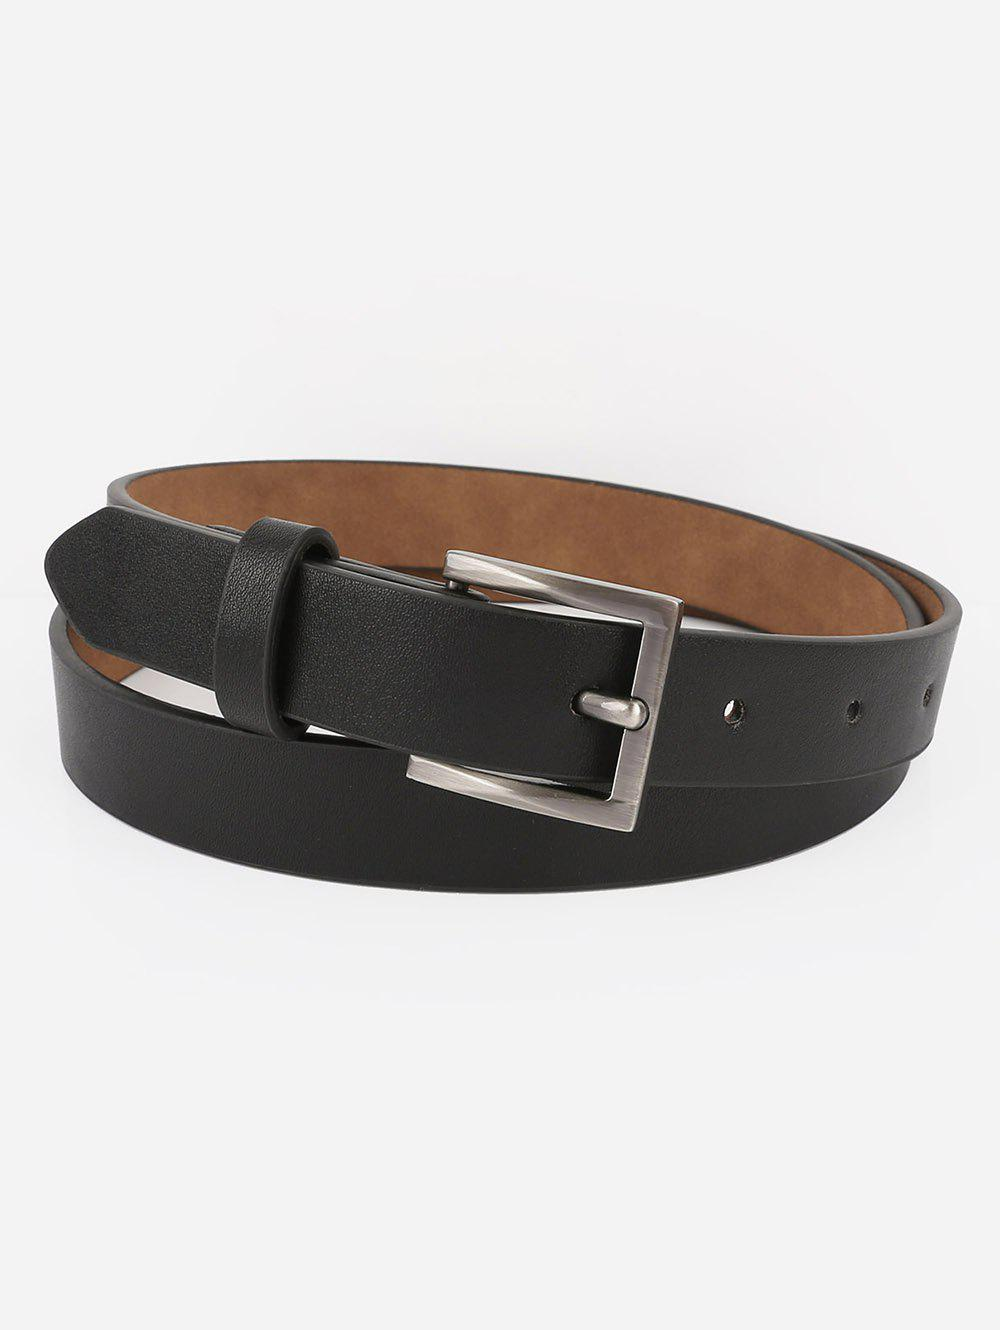 Statement Metal Buckle Artificial Leather Belt - BLACK